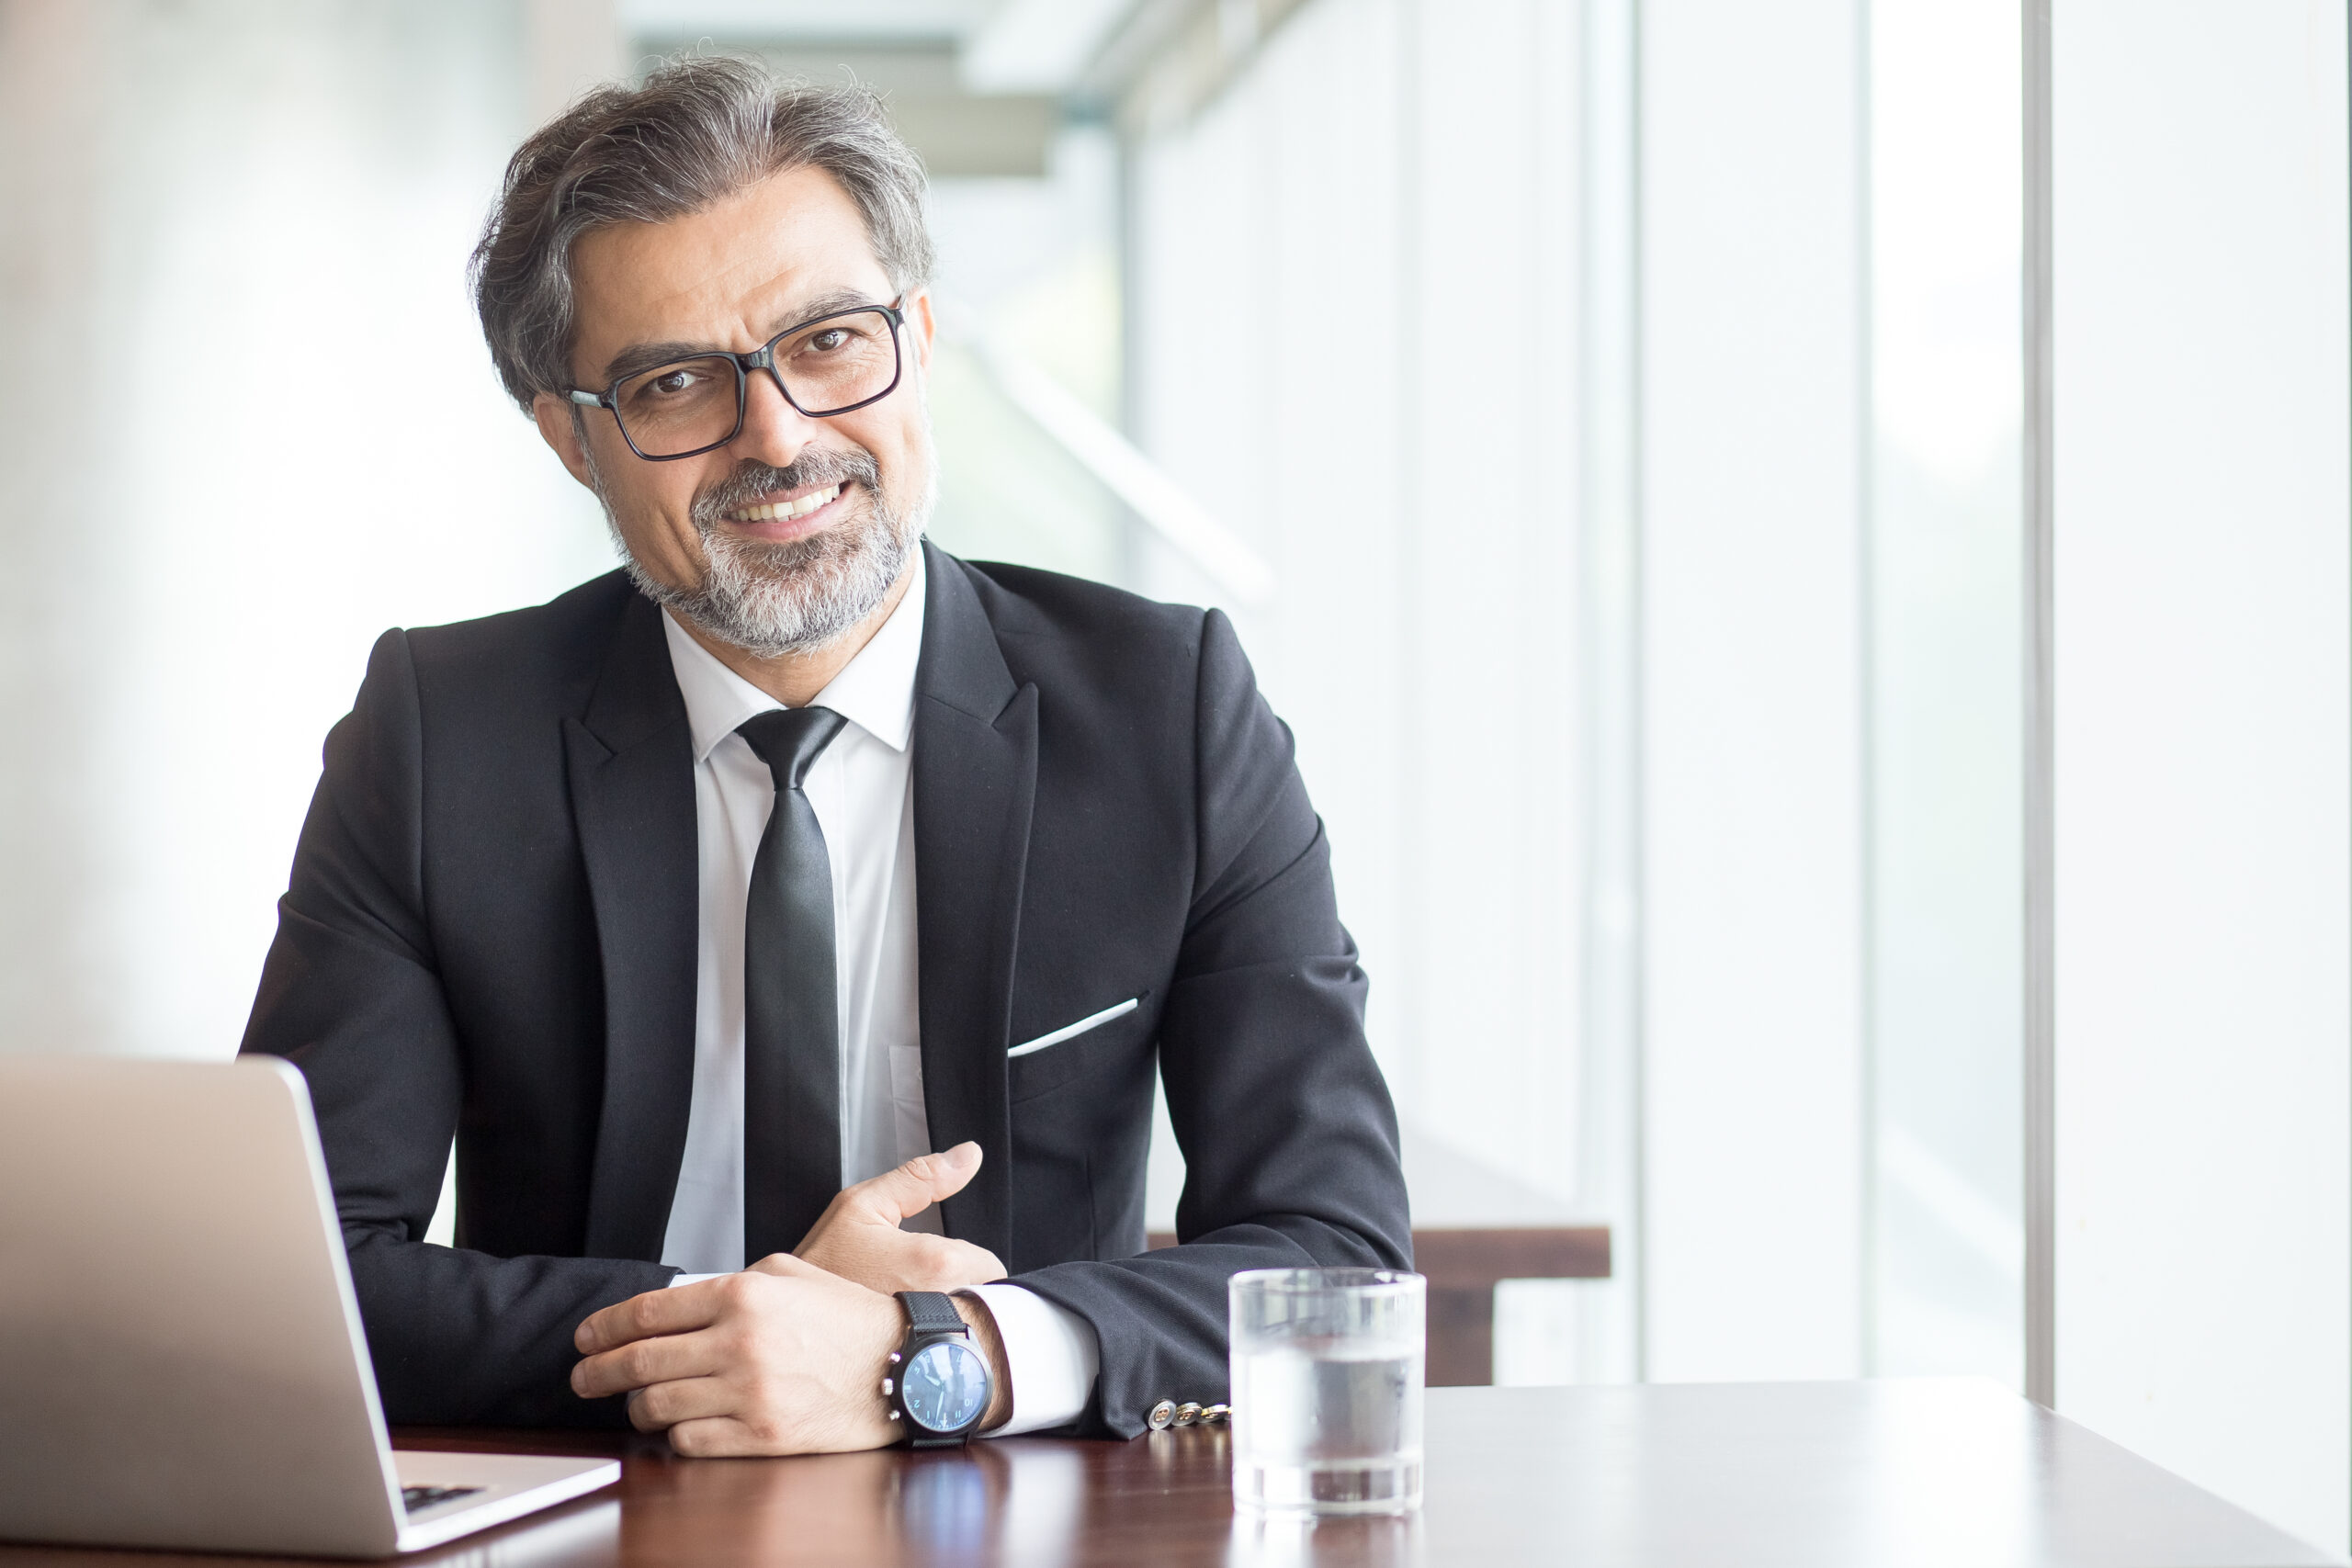 Cheerful businessman in eyeglasses working in office or coworking space. Portrait of confident male executive with gray hair at table. Successful business concept